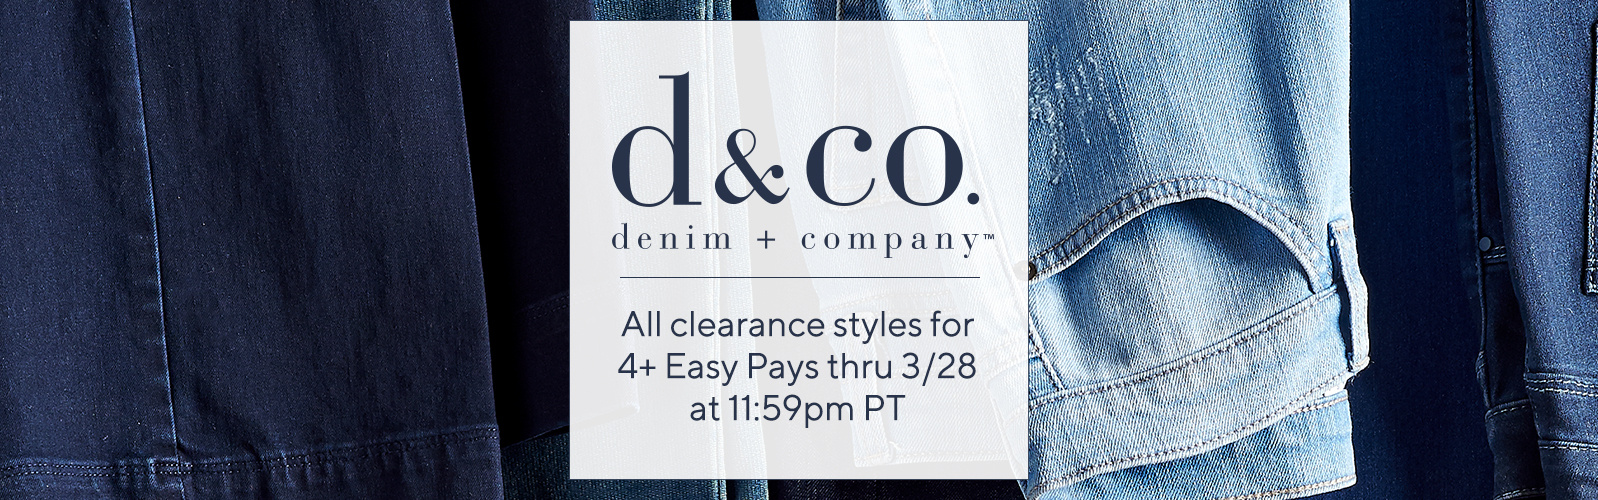 Denim   Co. All clearance styles for 4+ Easy Pays thru 3 28 ... 57db2c92e7384